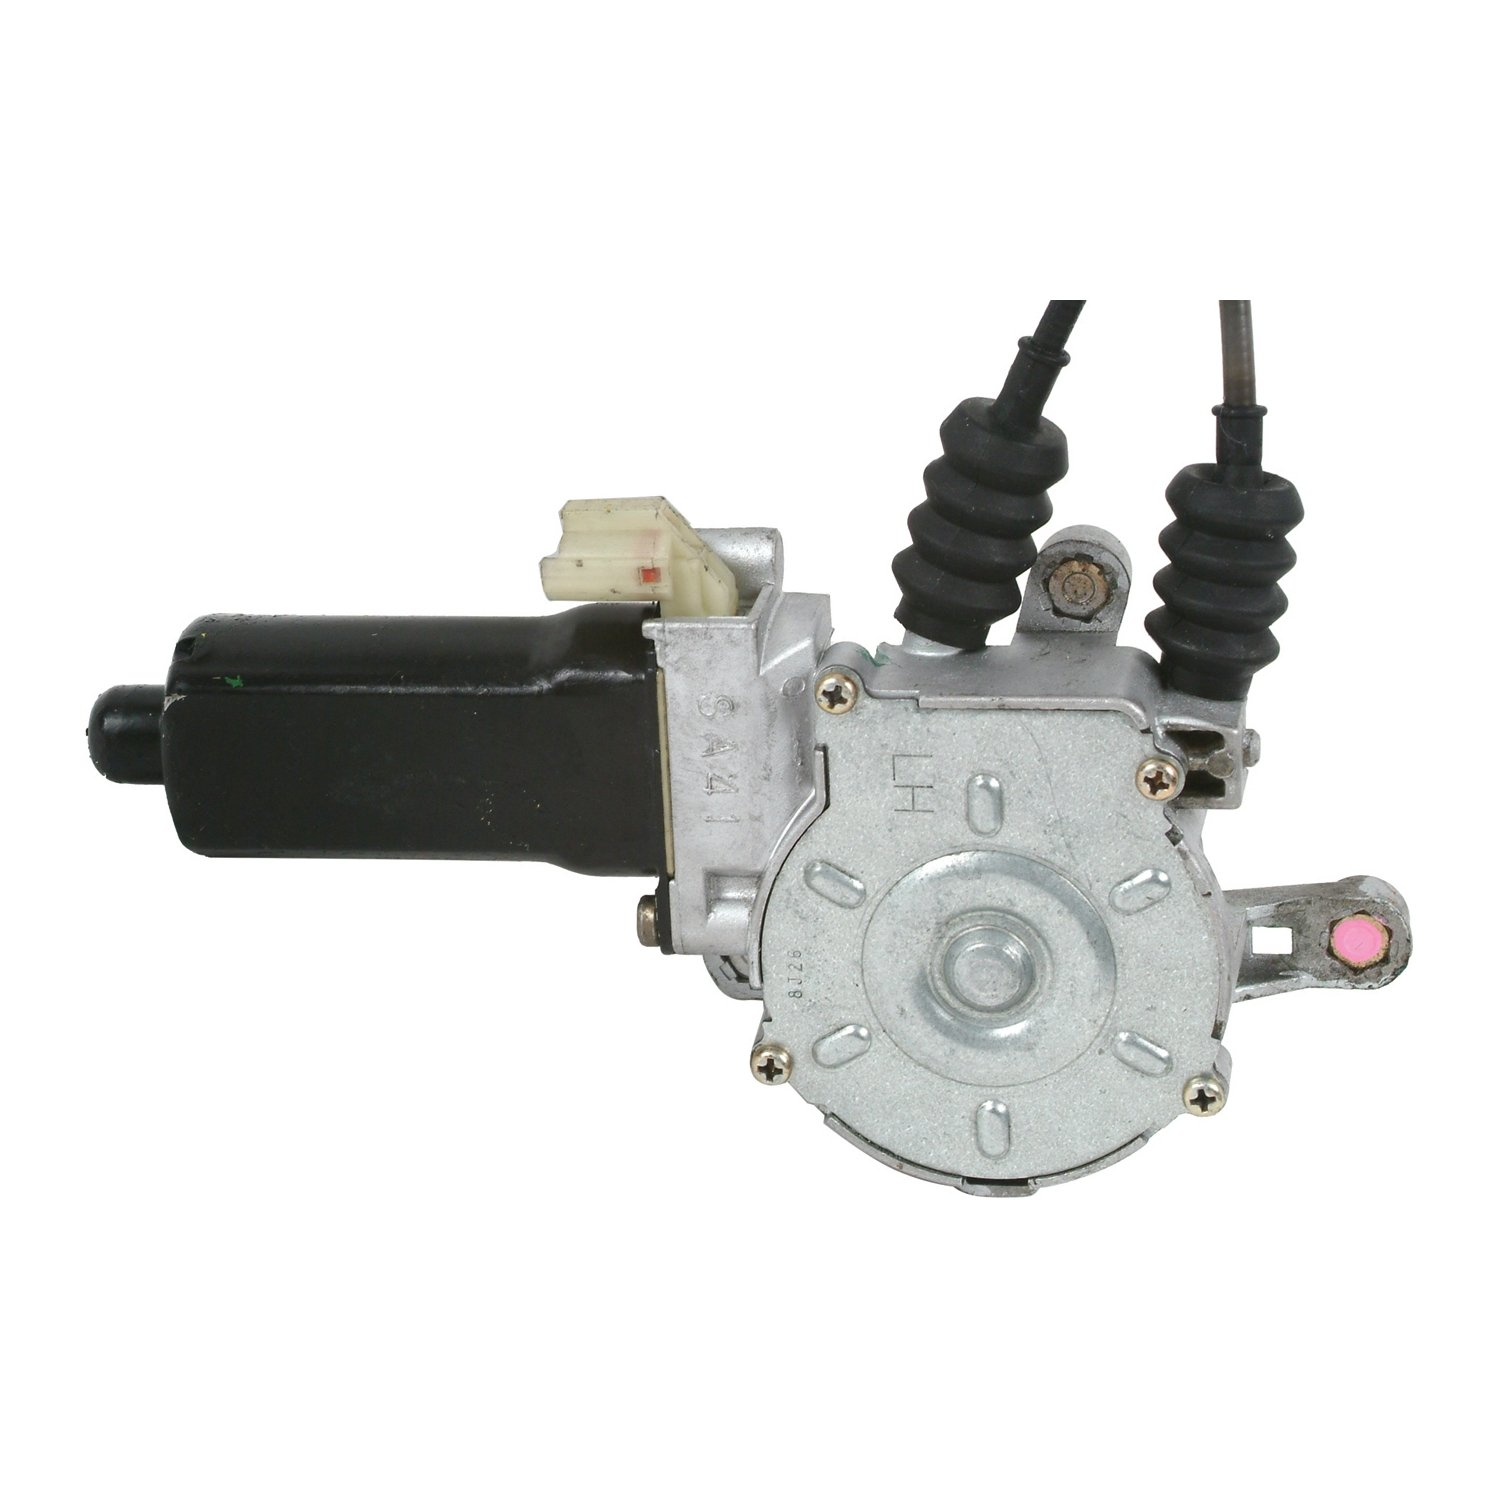 Cardone 47-4506R Remanufactured Import Window Lift Motor A1 Cardone A147-4506R